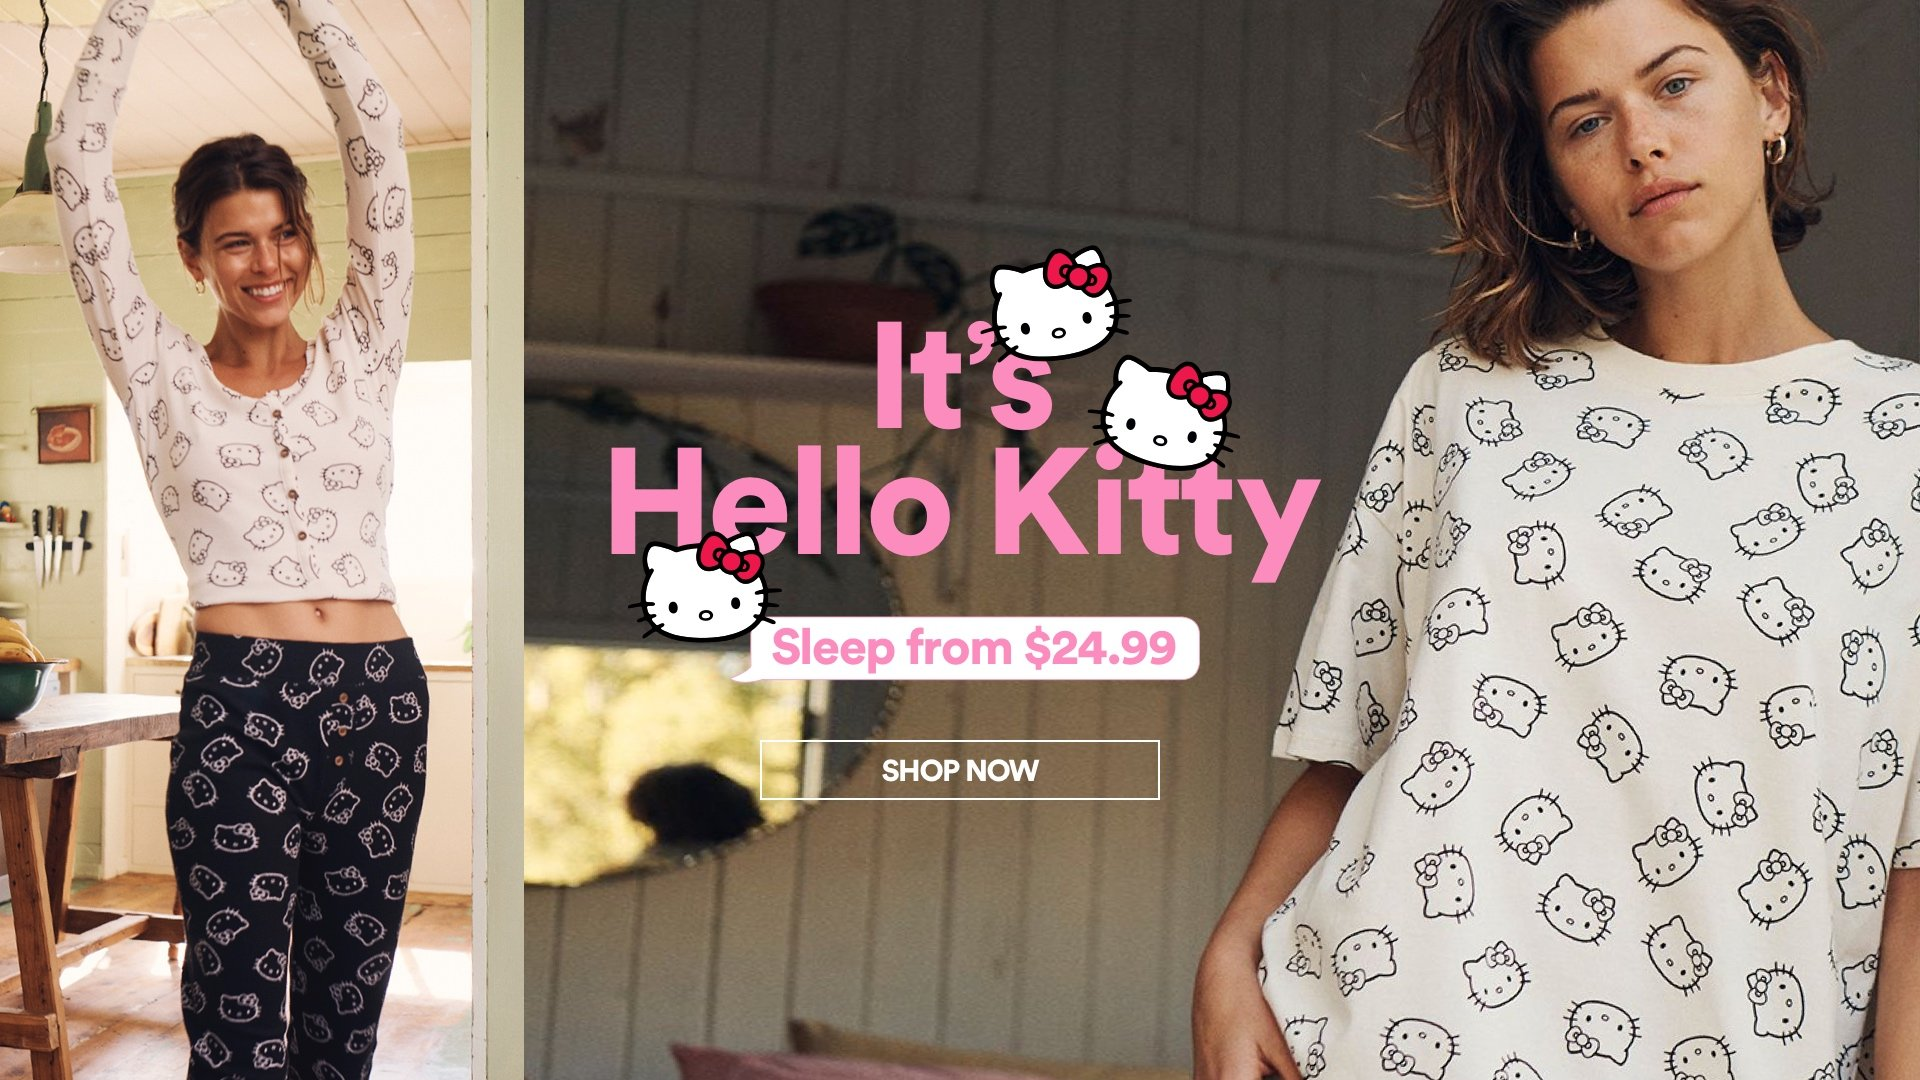 It's Hello Kitty. Click to shop sleep.